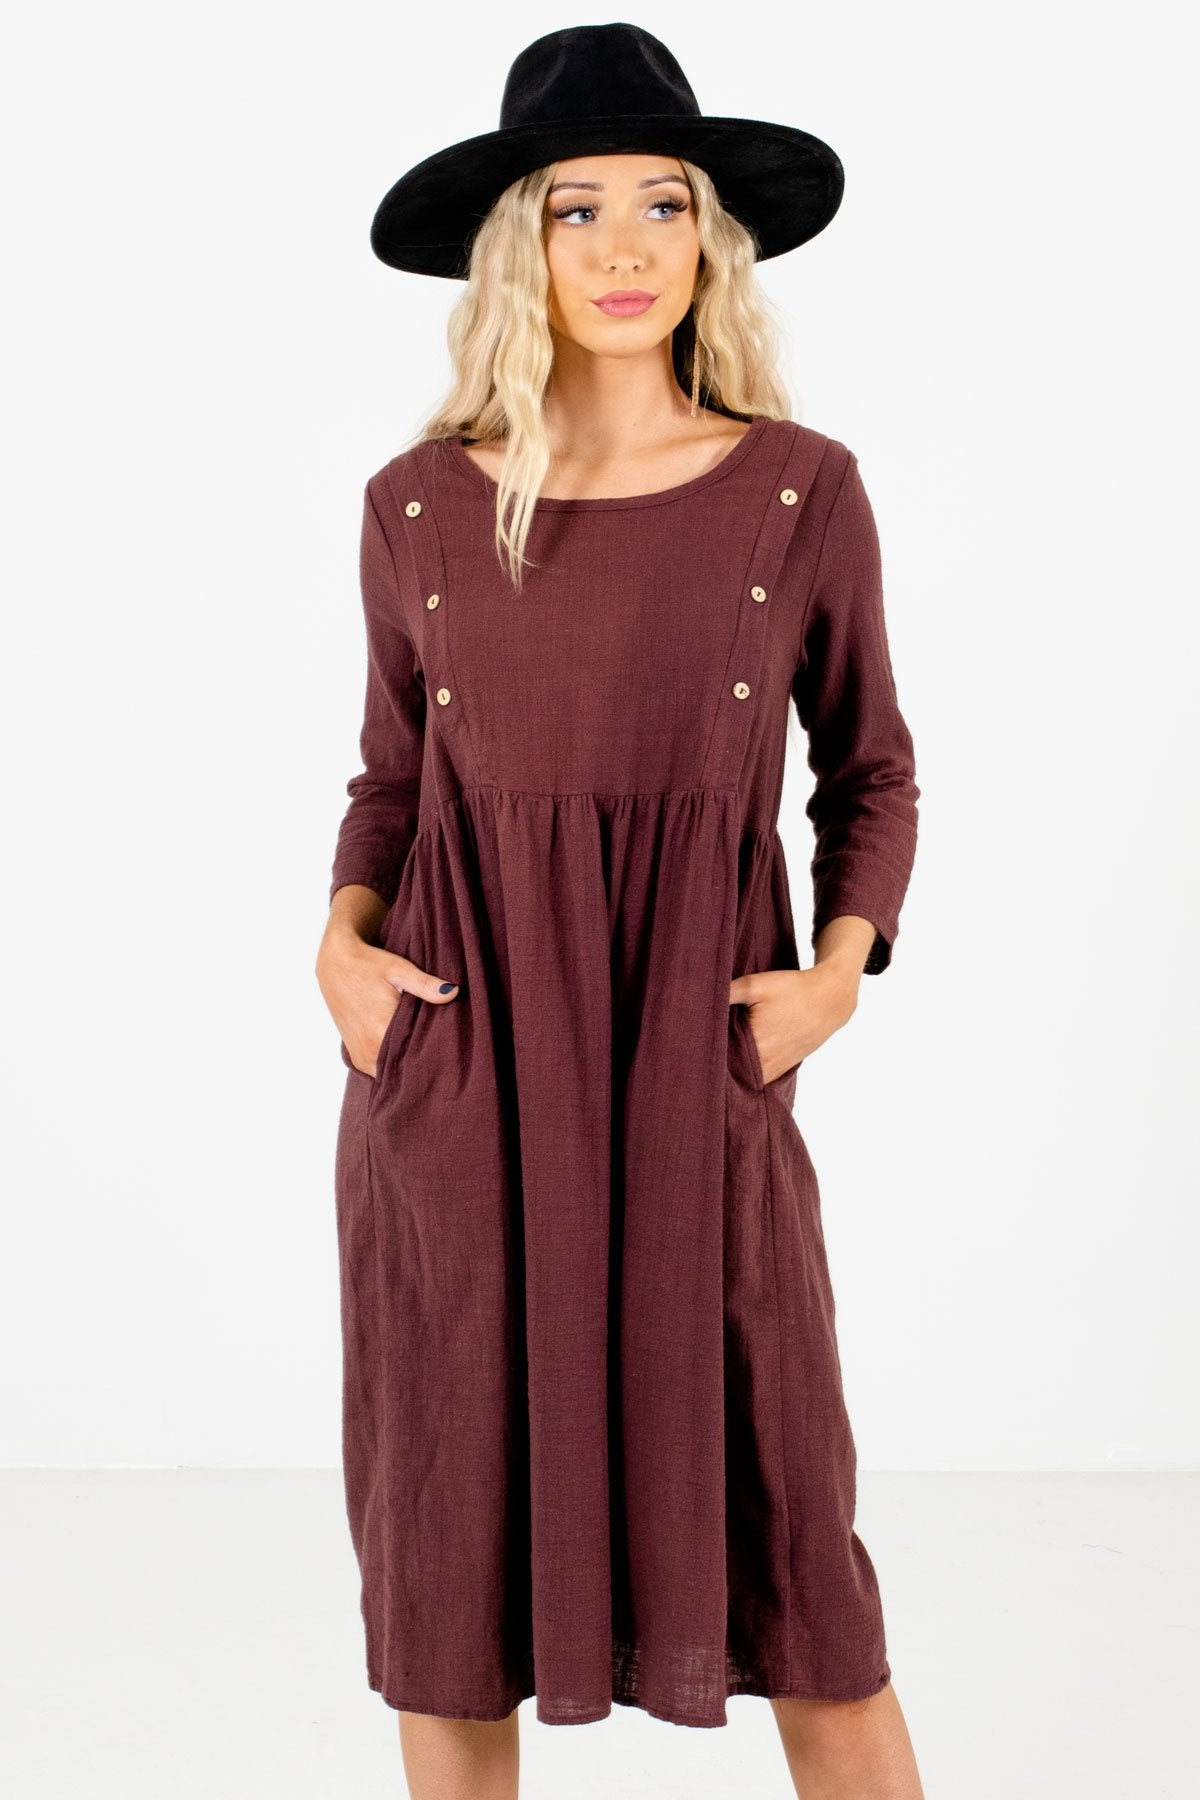 Purple Knee-Length Boutique Dresses for Women